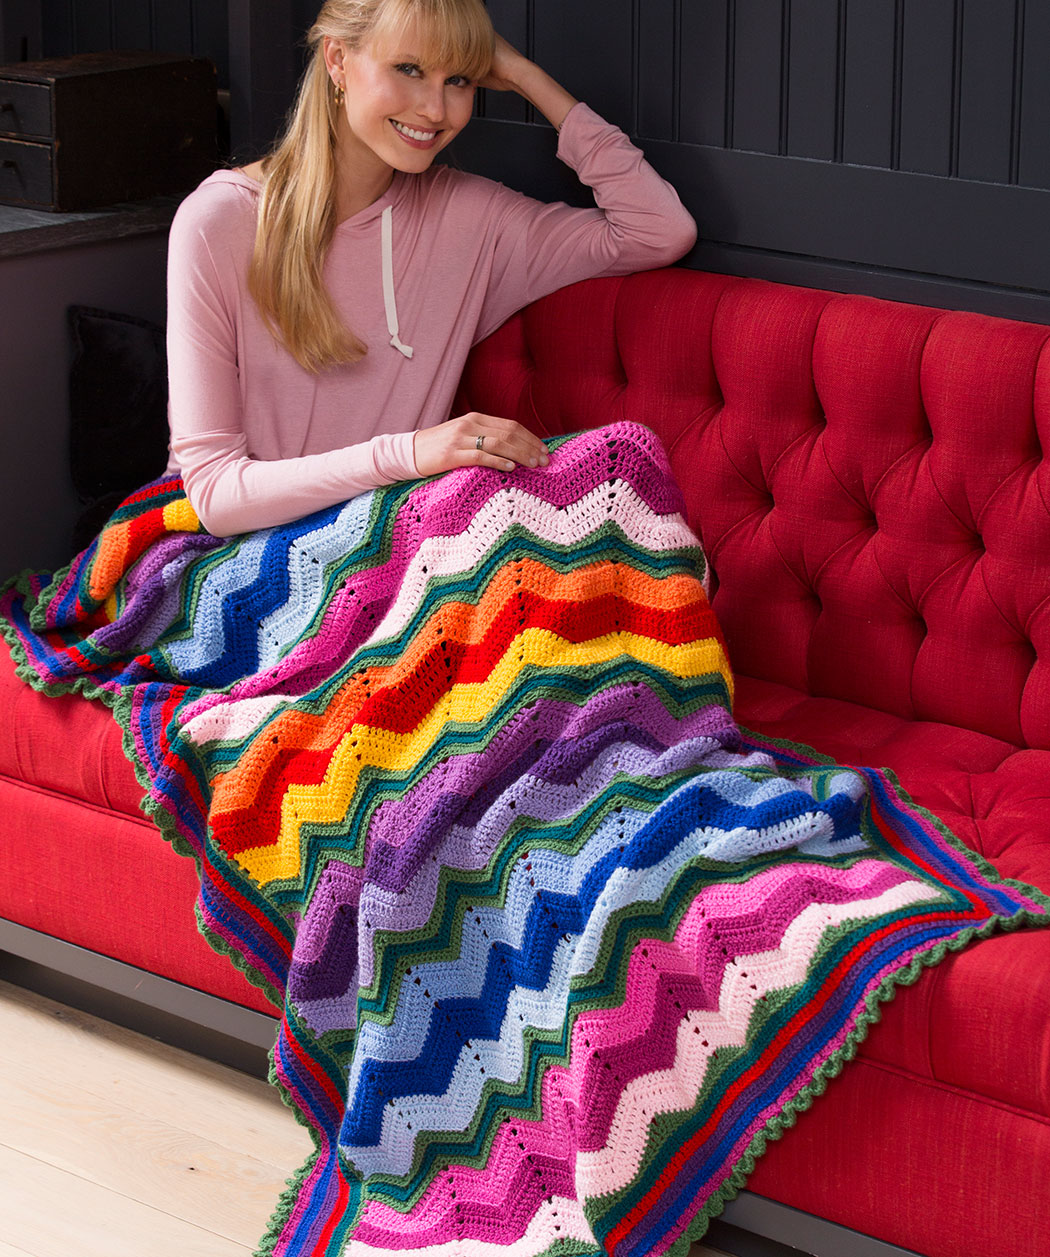 Red Heart Crochet Patterns stunning rippling throw esektib